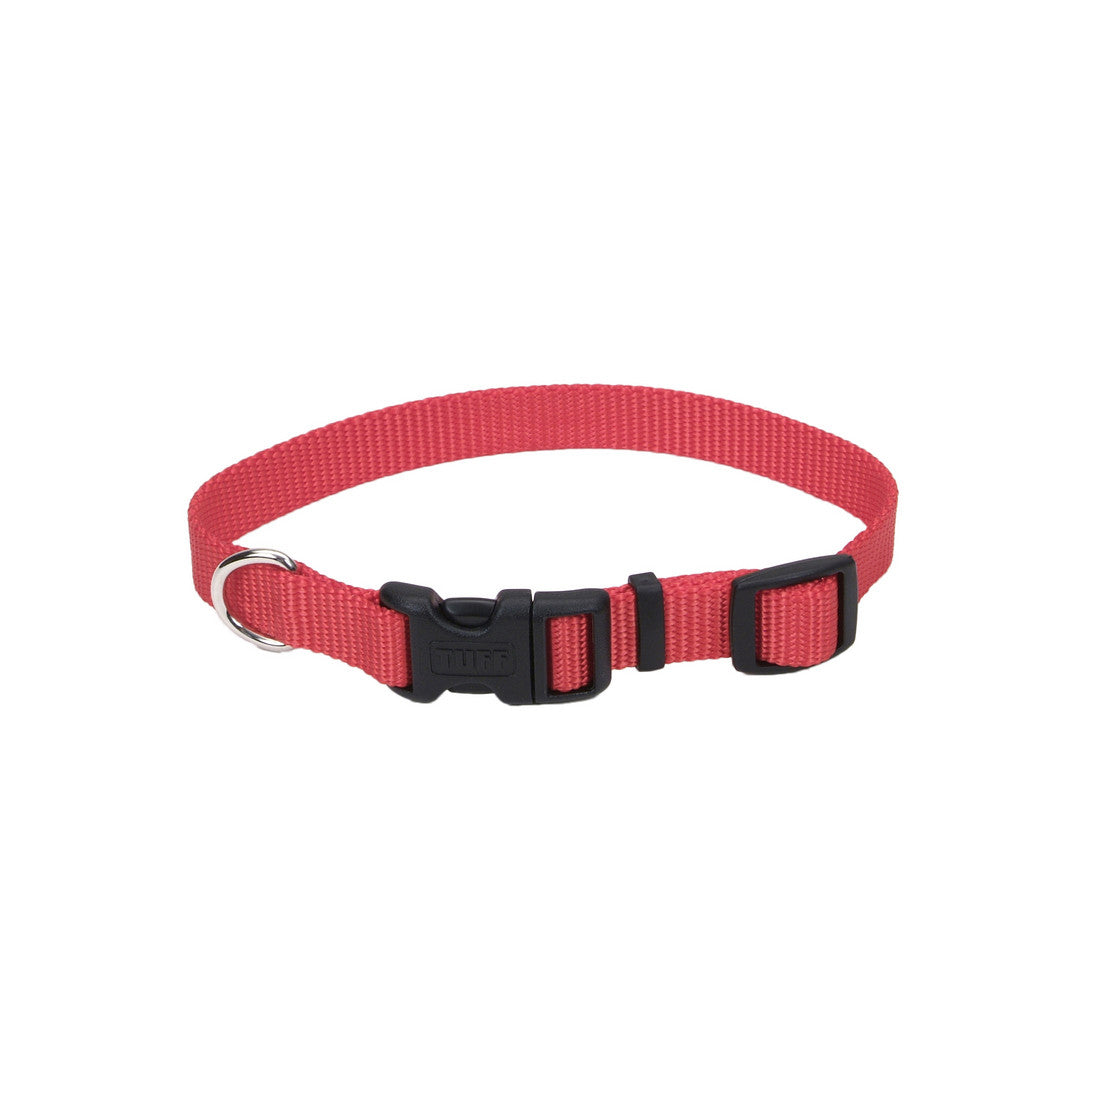 Coastal Adjustable Nylon Dog Collar with Tuff Buckle - Canadian Pet Connection